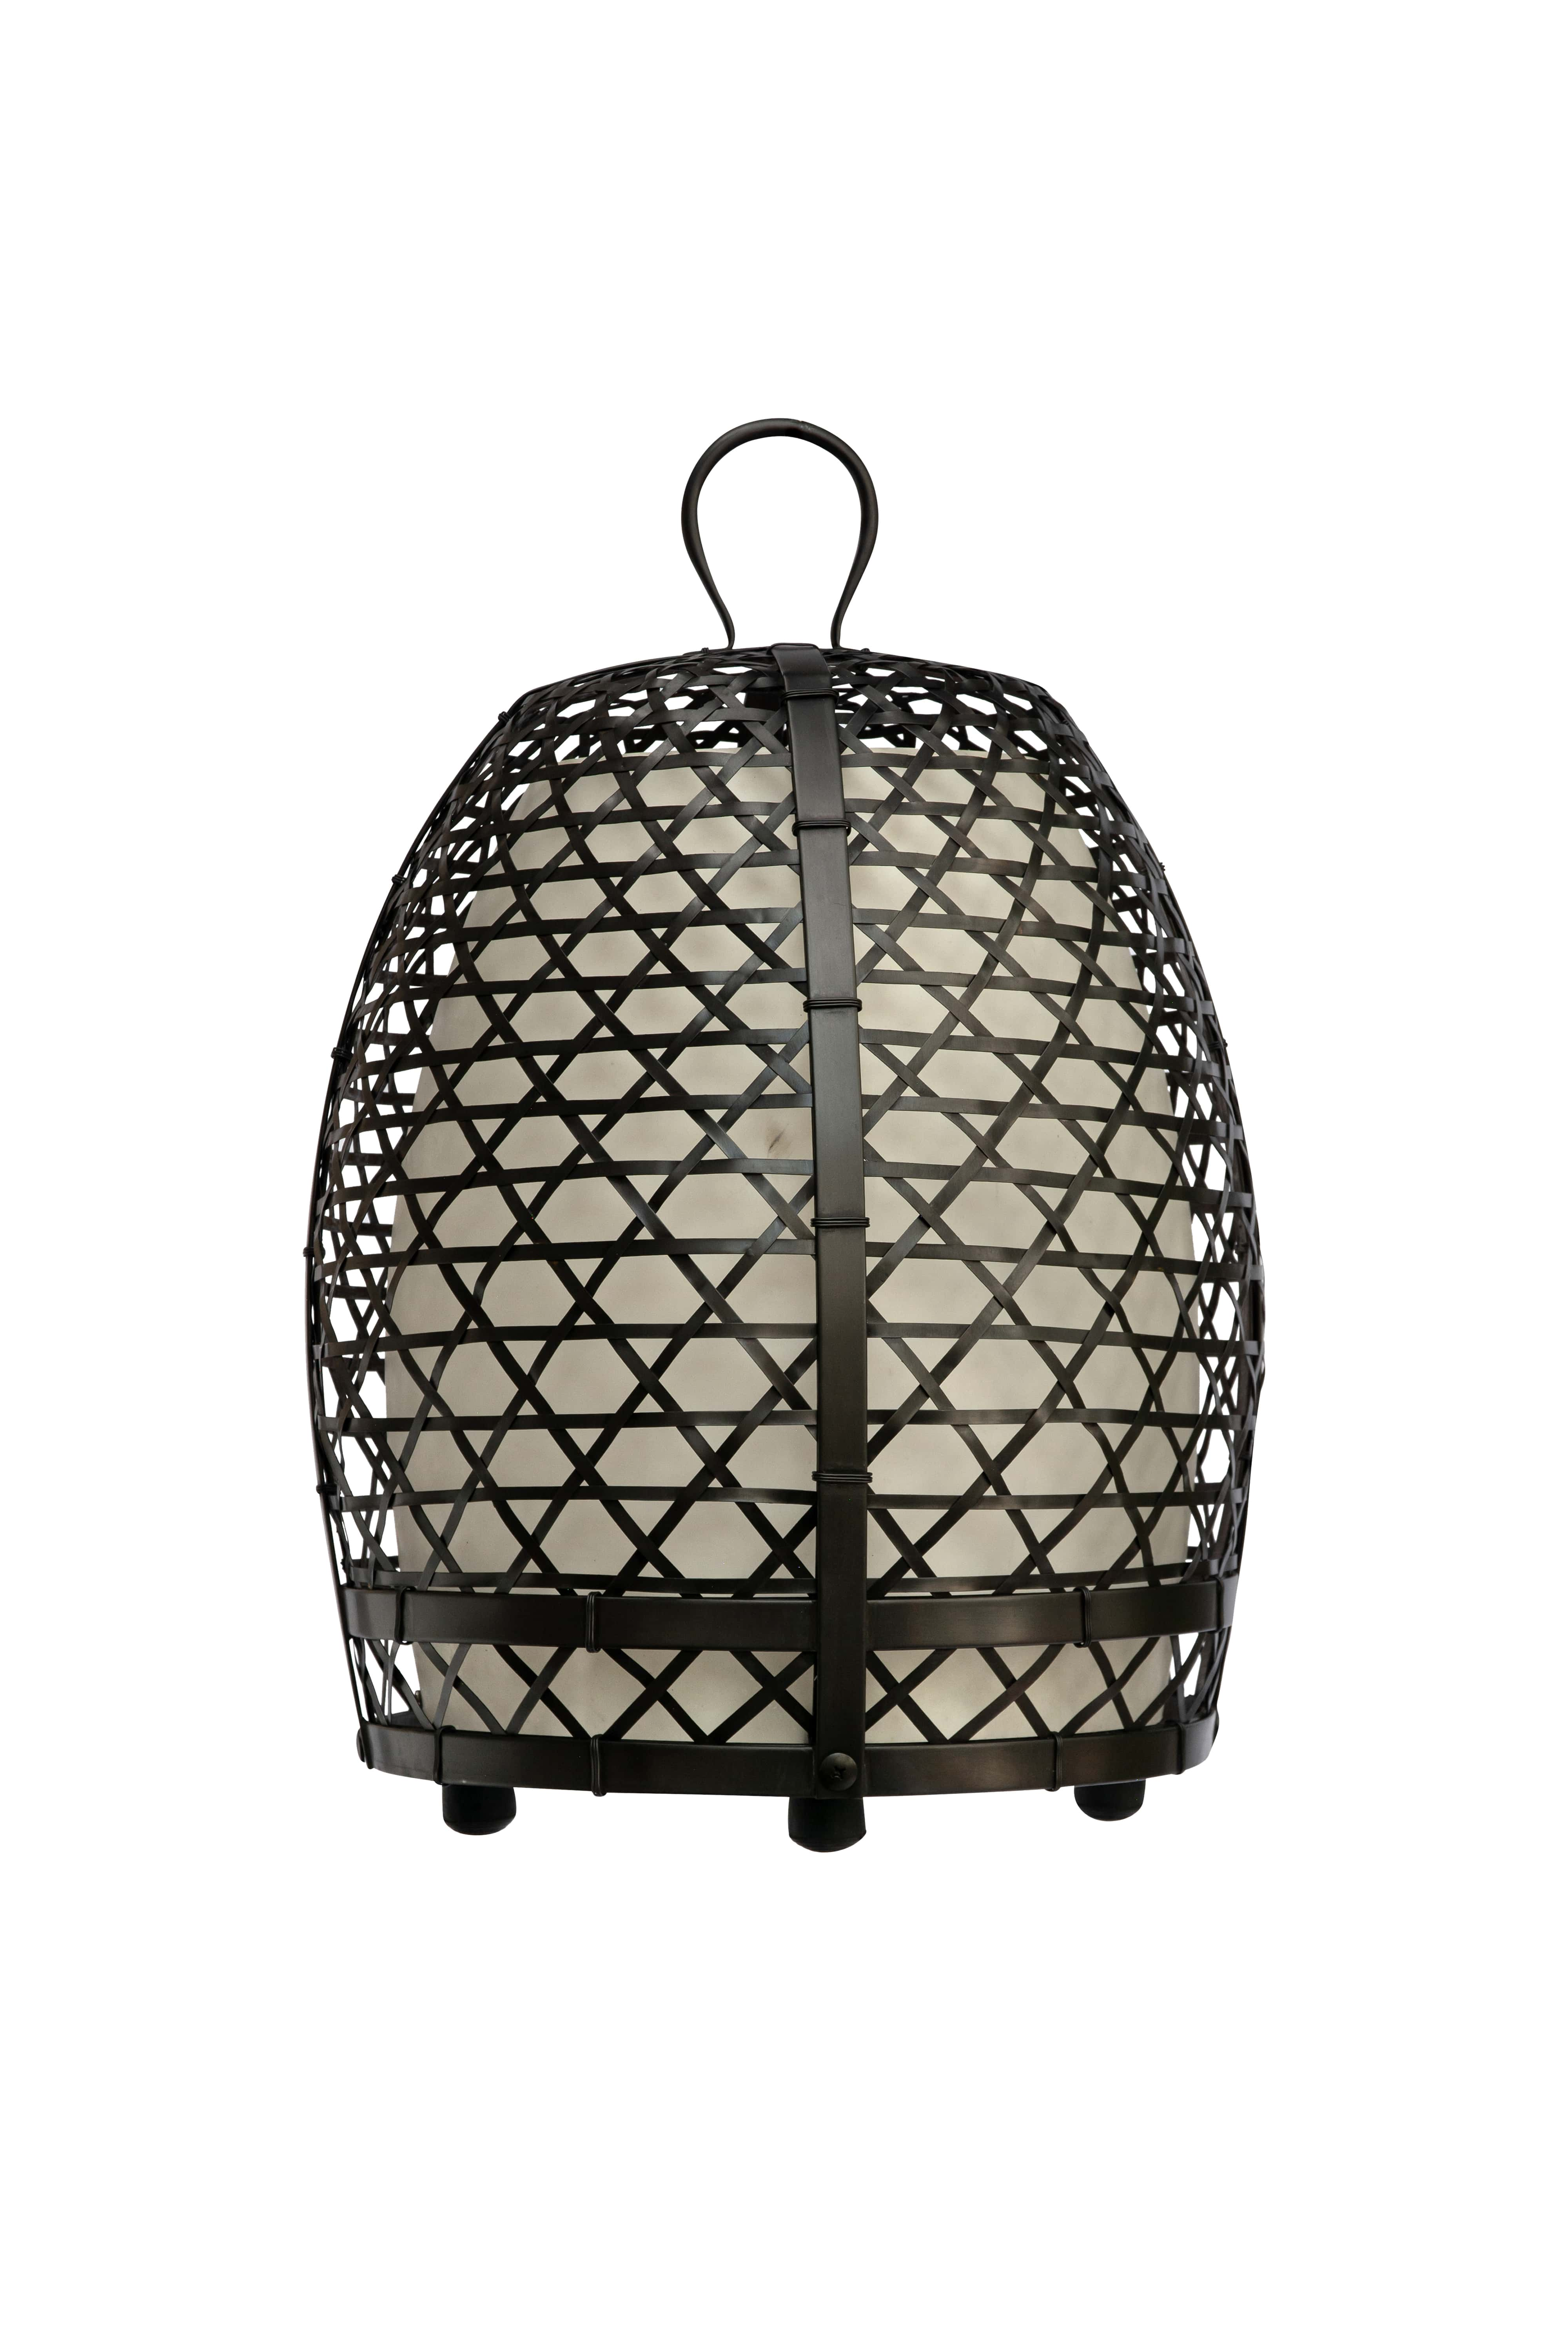 Rooster cage lamp, 59 Cm